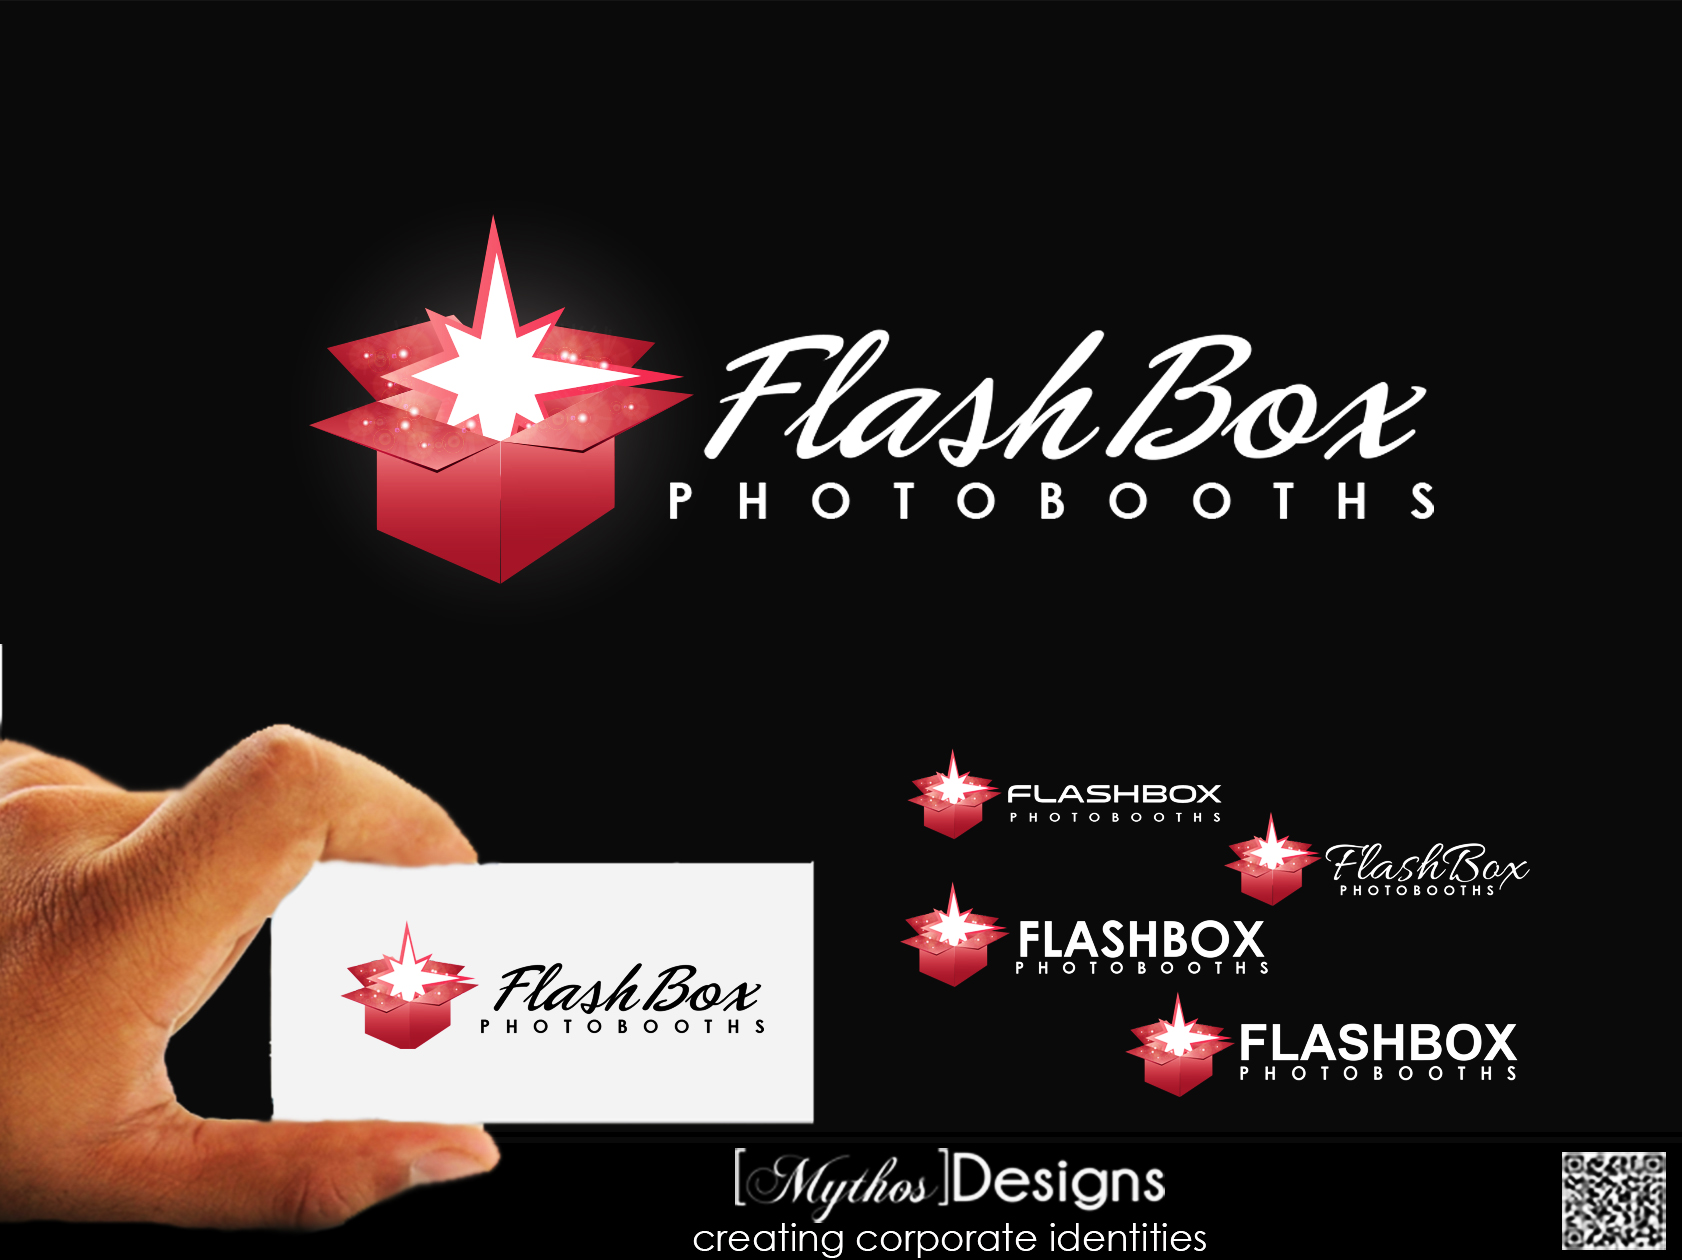 Logo Design by Mythos Designs - Entry No. 42 in the Logo Design Contest New Logo Design for FlashBox Photobooths.